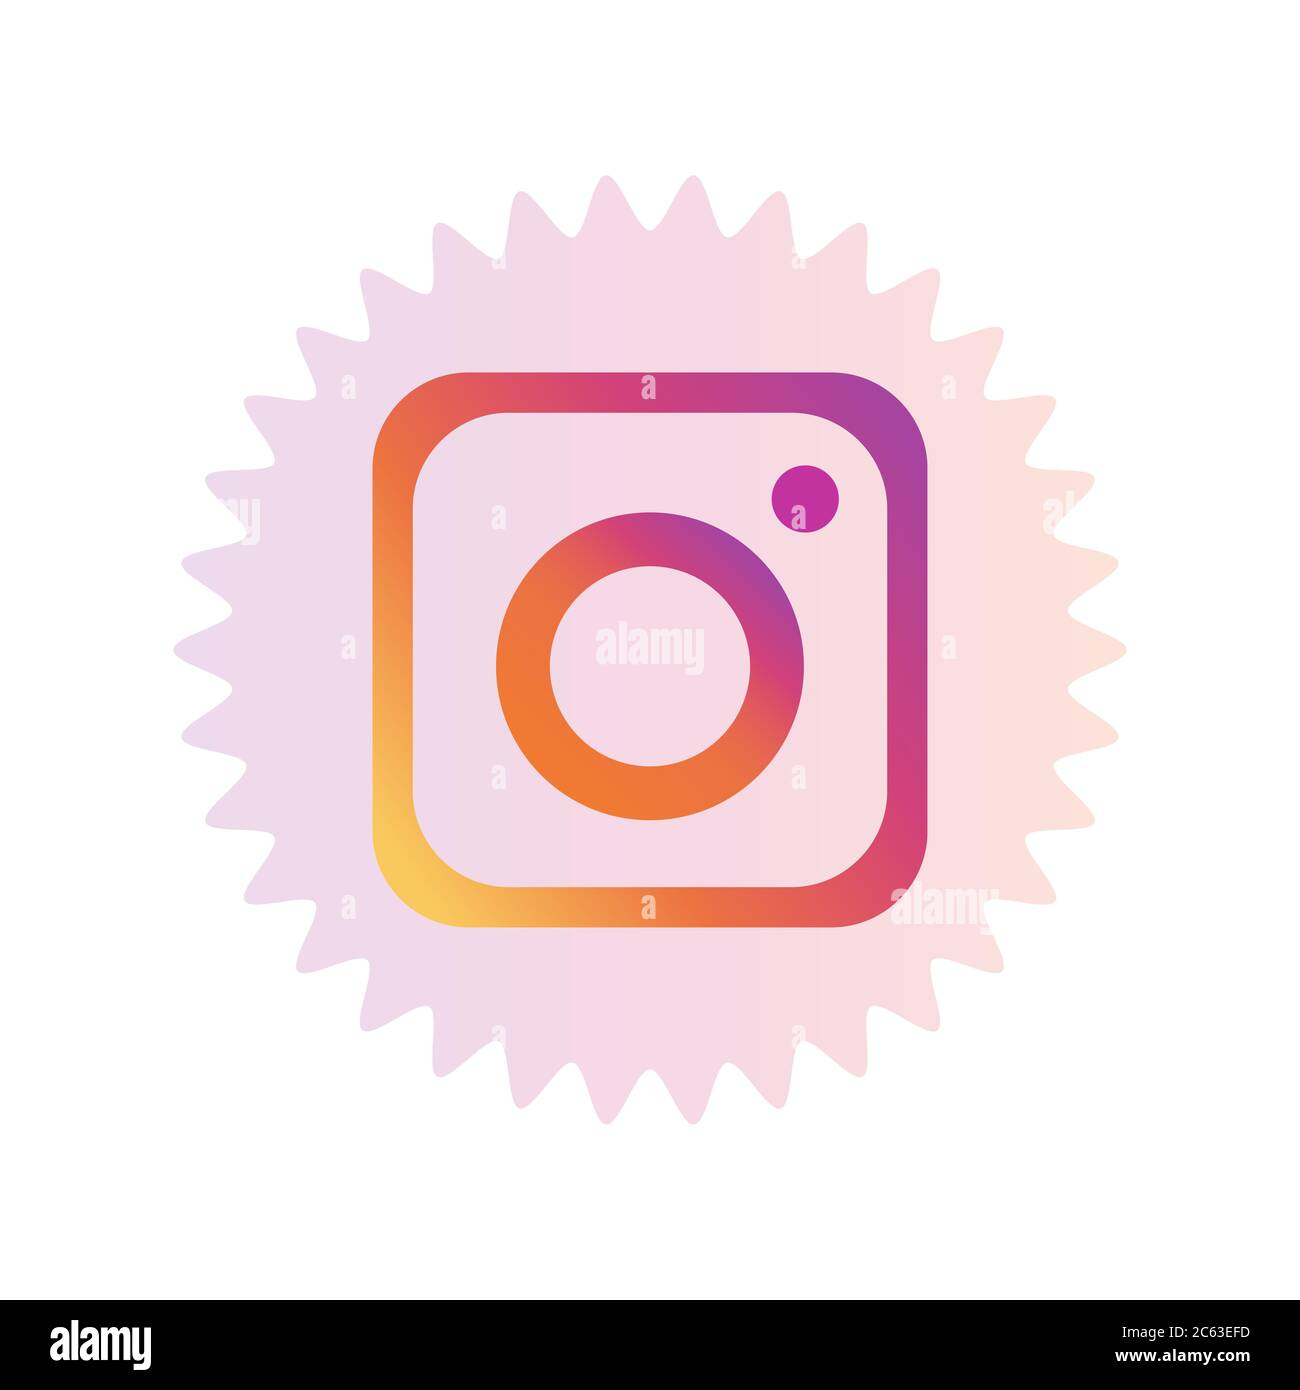 Page 3 Instagram Like Button High Resolution Stock Photography And Images Alamy